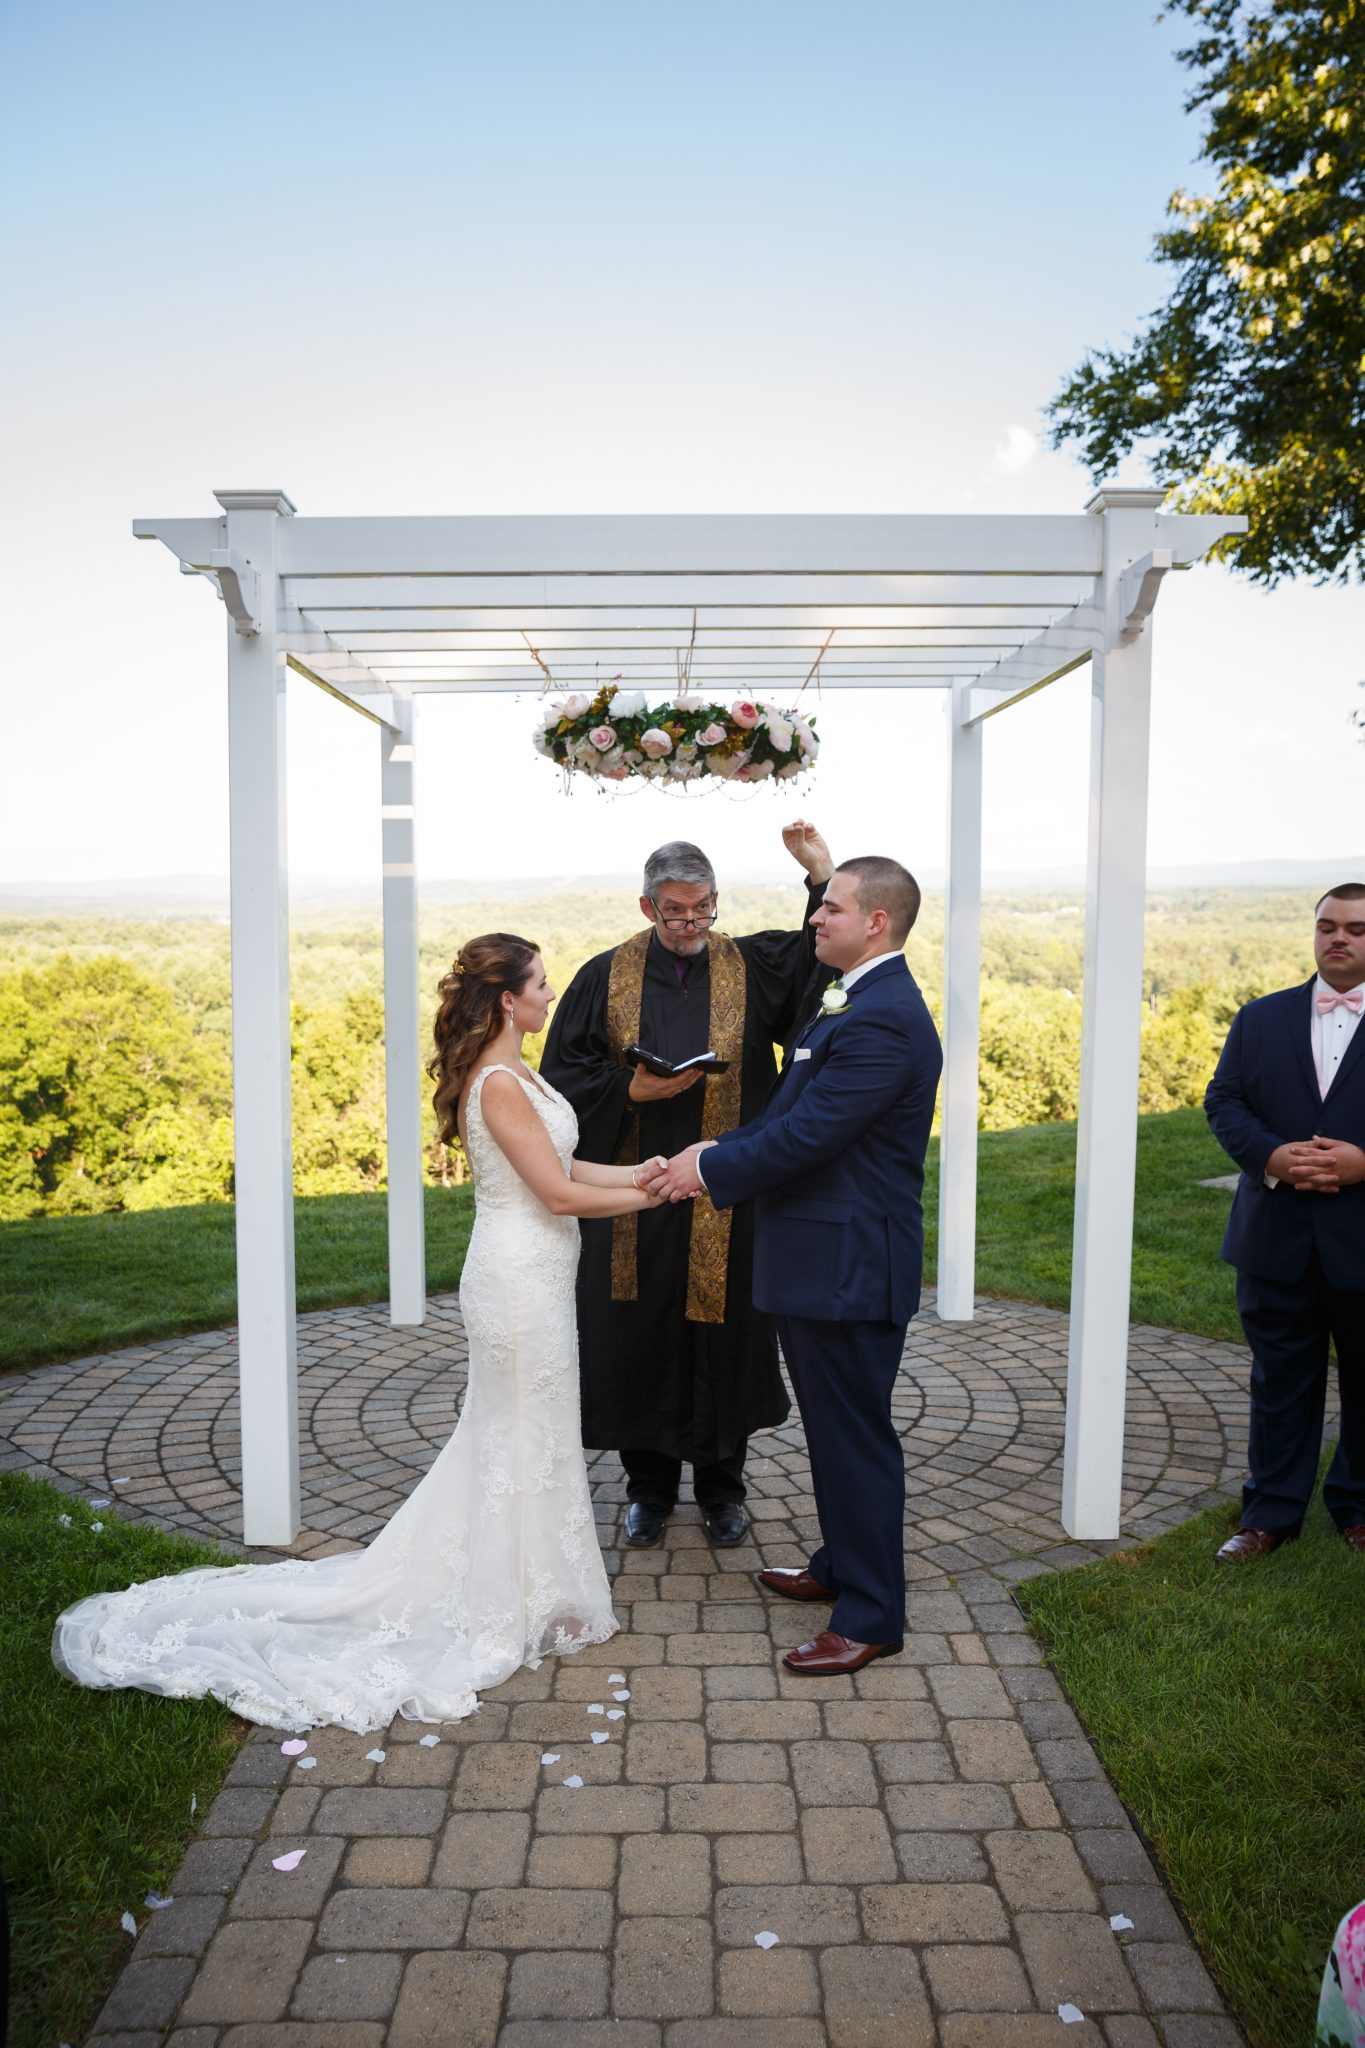 Ceremony photo at the Mountain Rose Inn Wedding